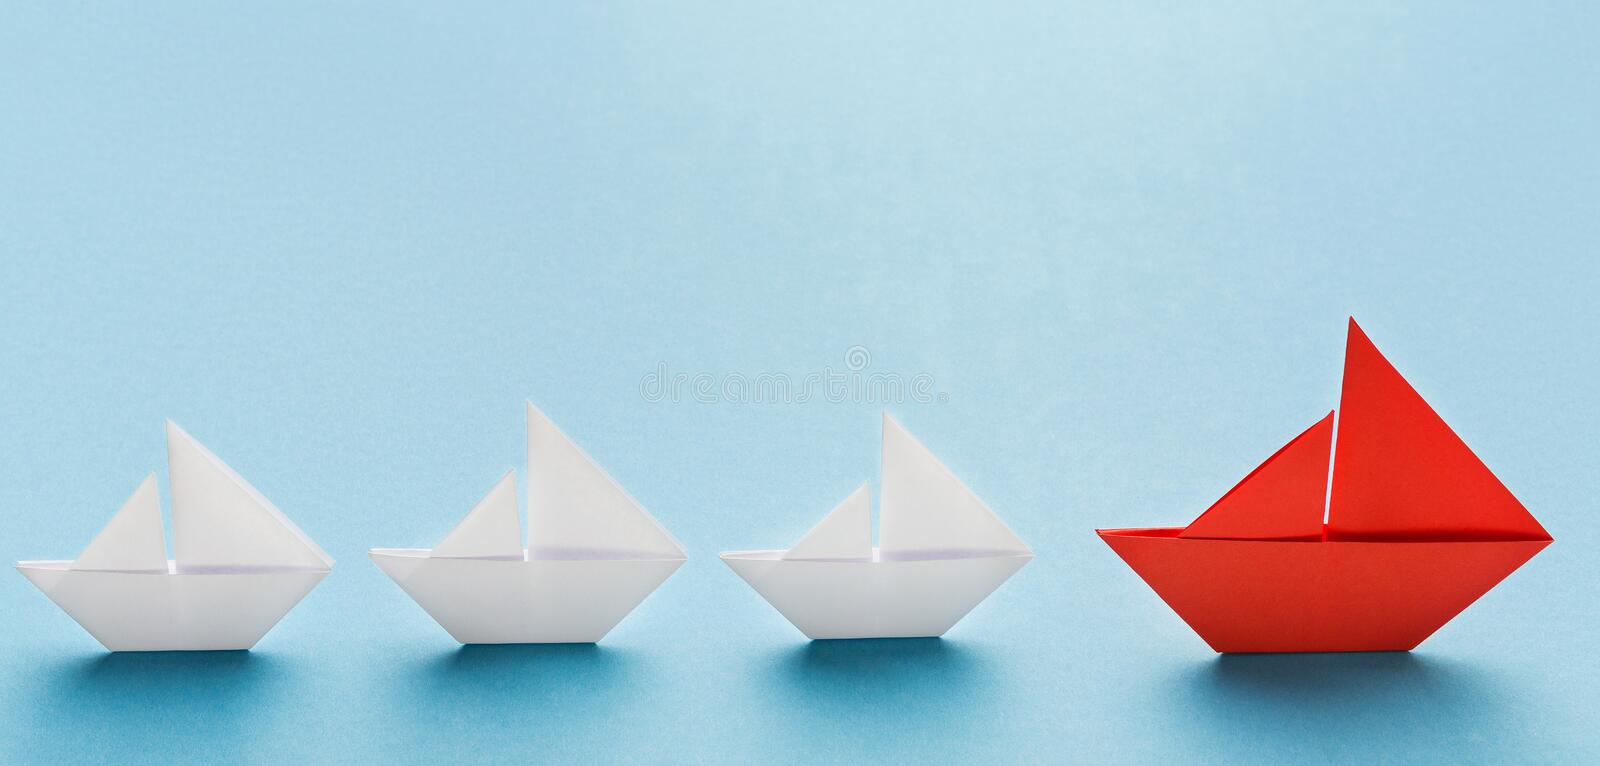 Corporate culture and discipline illustrated by office subjects in strict order. Corporate culture and discipline at work. Small white boats following big red stock photography